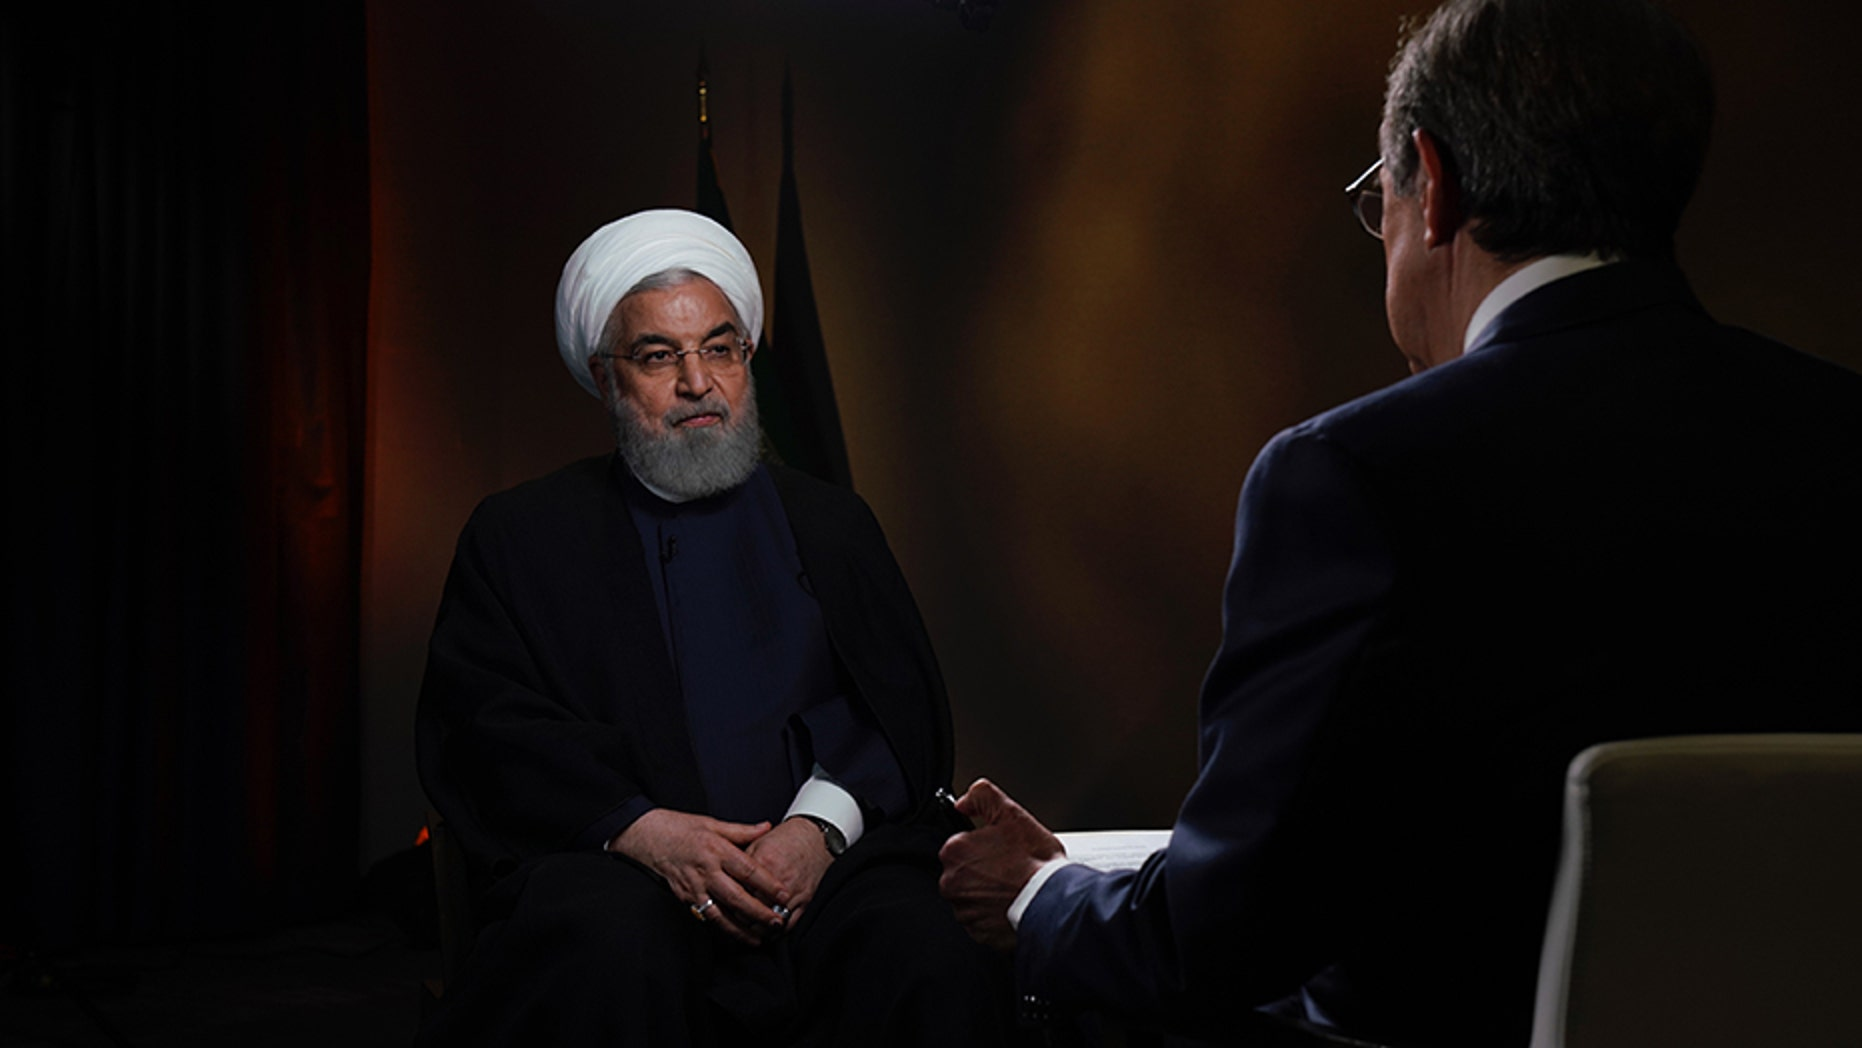 Westlake Legal Group Rouhani-Wallace-1 Rouhani says Iran will not negotiate with US, accuses America of 'economic terrorism' fox-news/world/united-nations fox-news/world/conflicts/iran fox-news/politics/foreign-policy/state-department fox-news/politics/foreign-policy/nuclear-proliferation fox news fnc/world fnc d7456223-5730-5b3d-a5b4-16bca72e37aa Barnini Chakraborty article